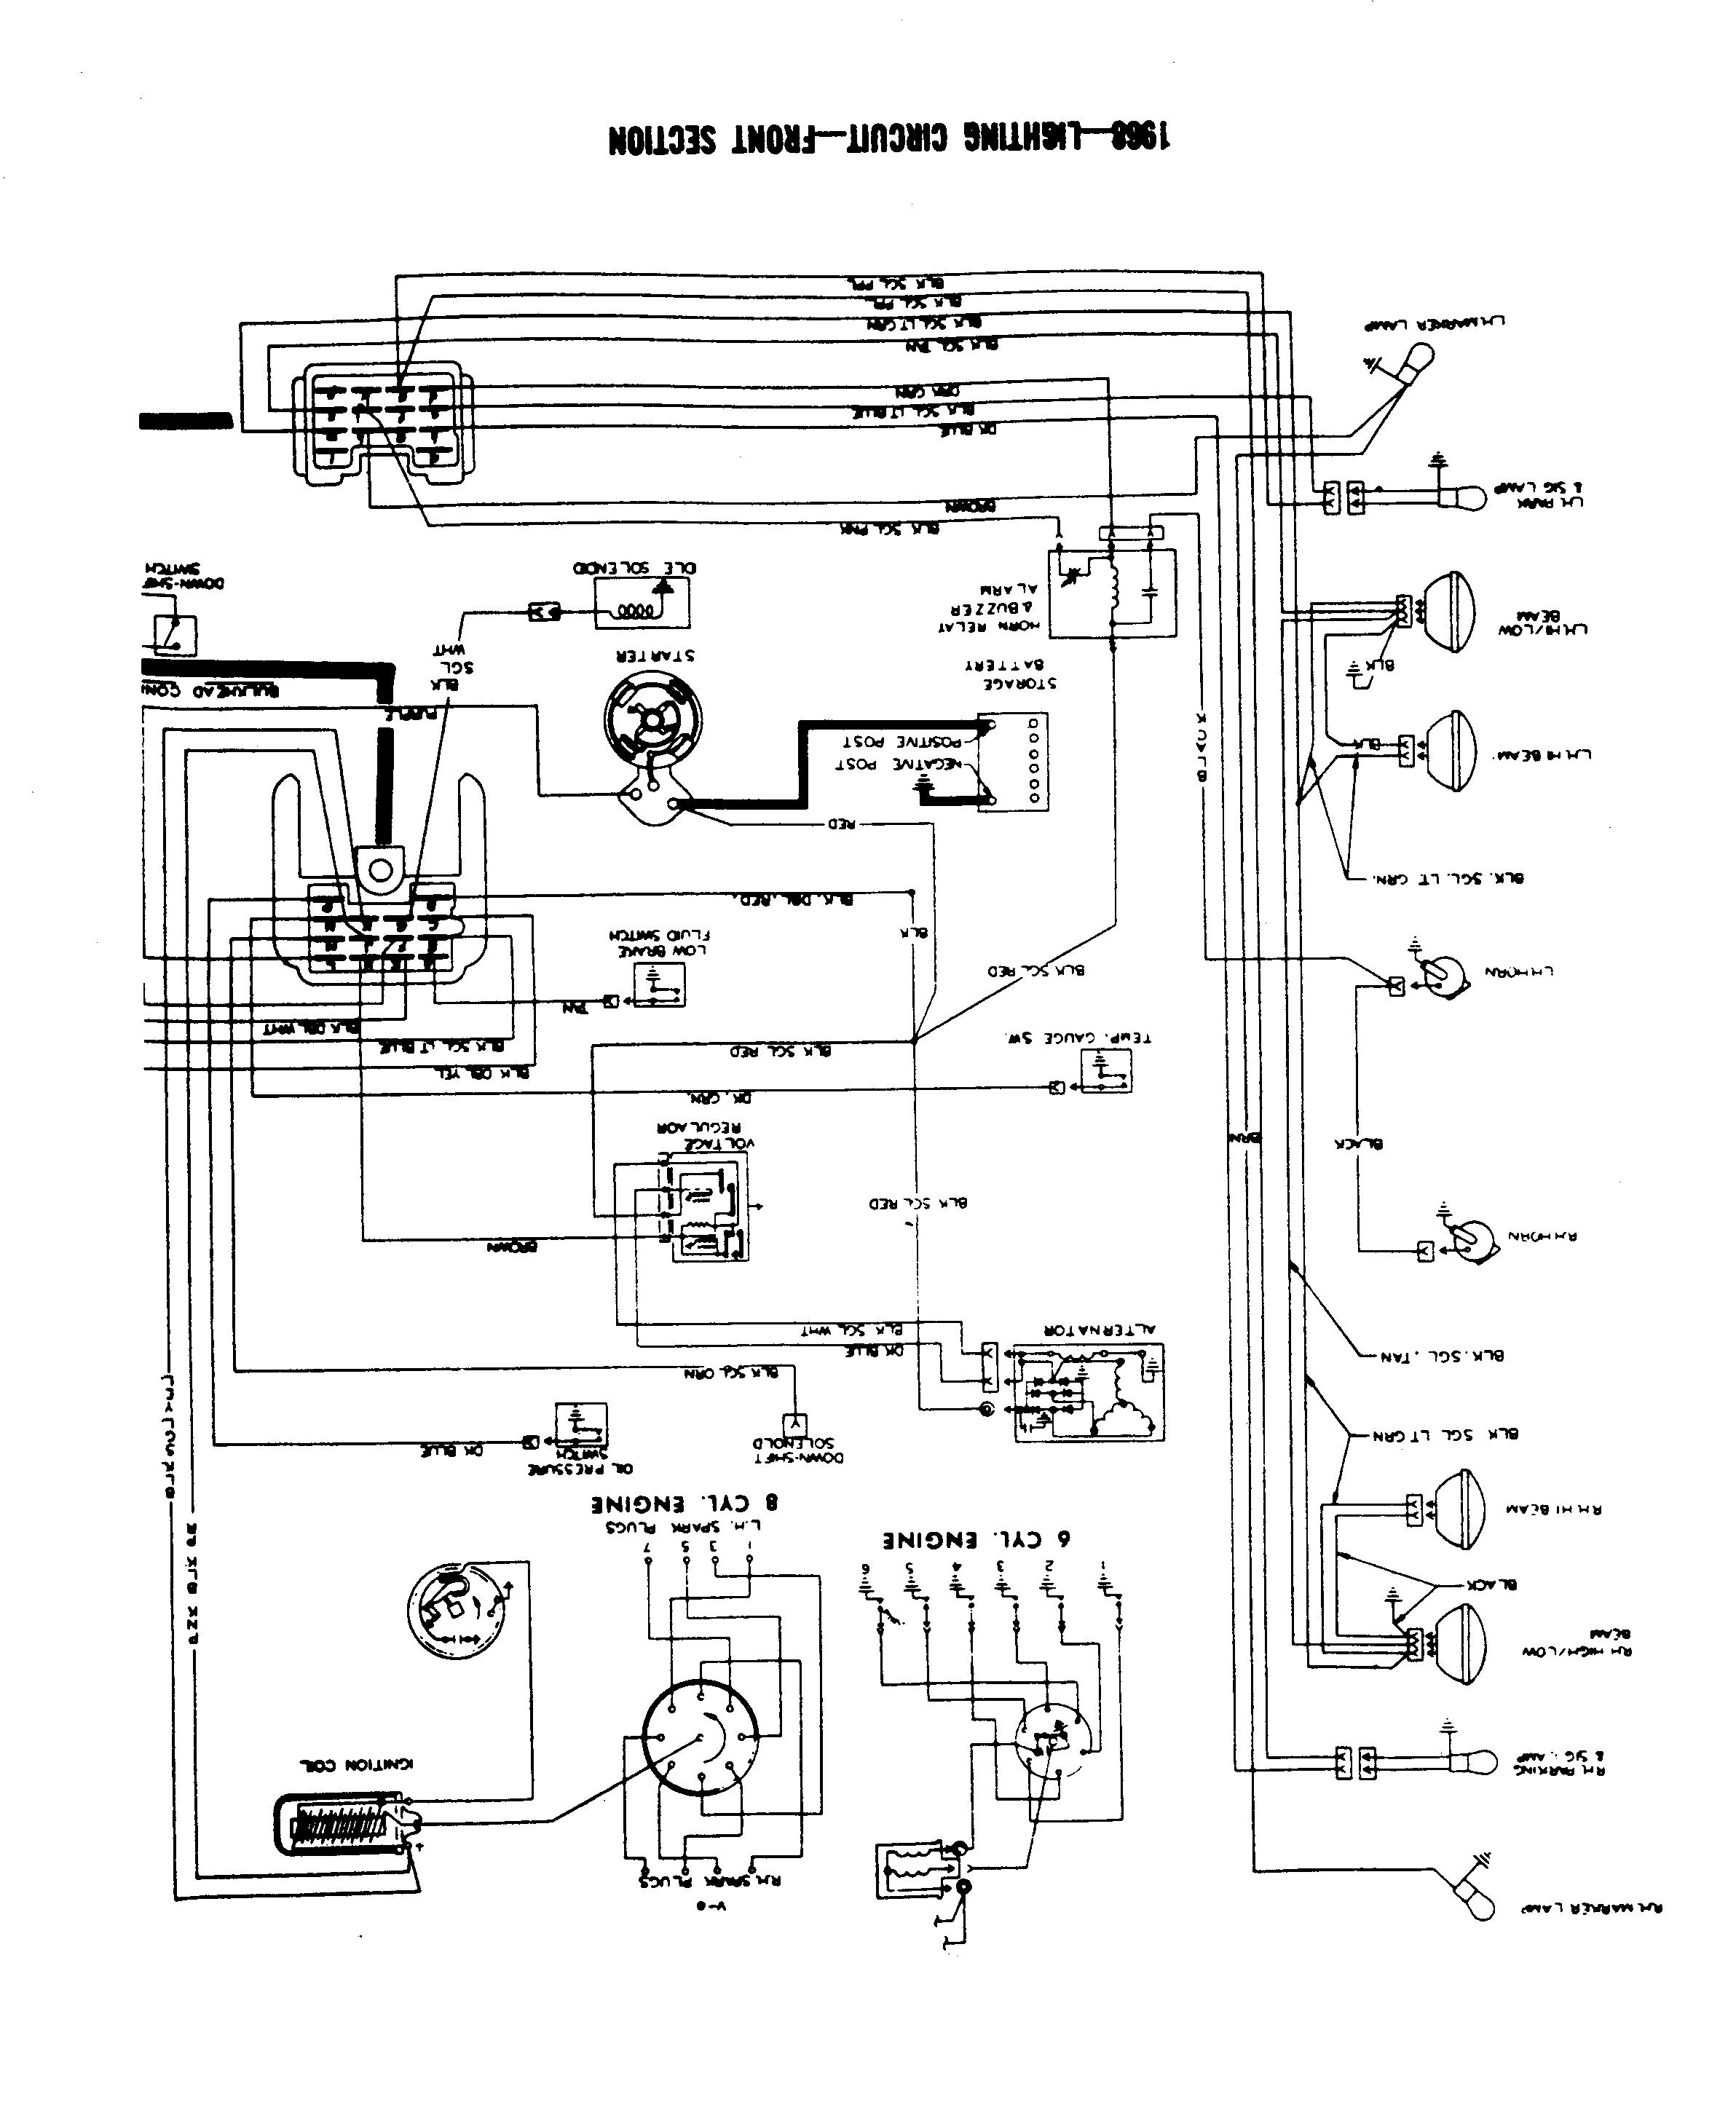 [WRG-9599] 1965 Gto Wiring Diagram